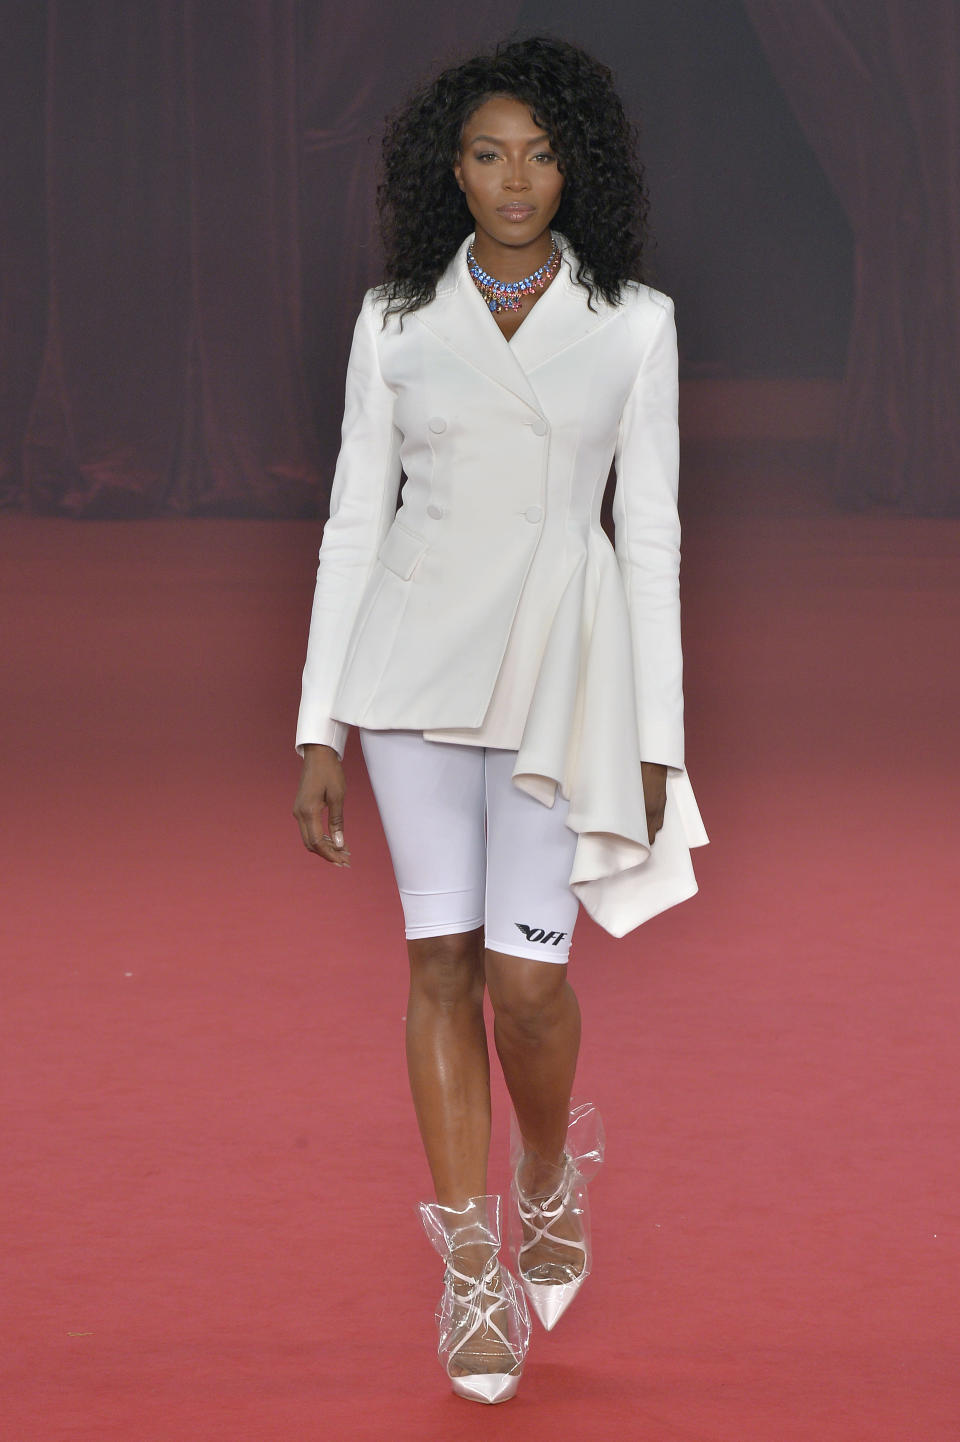 Naomi Campbell appears on the Off-White runway wearing bike shorts. (Photo: Getty)